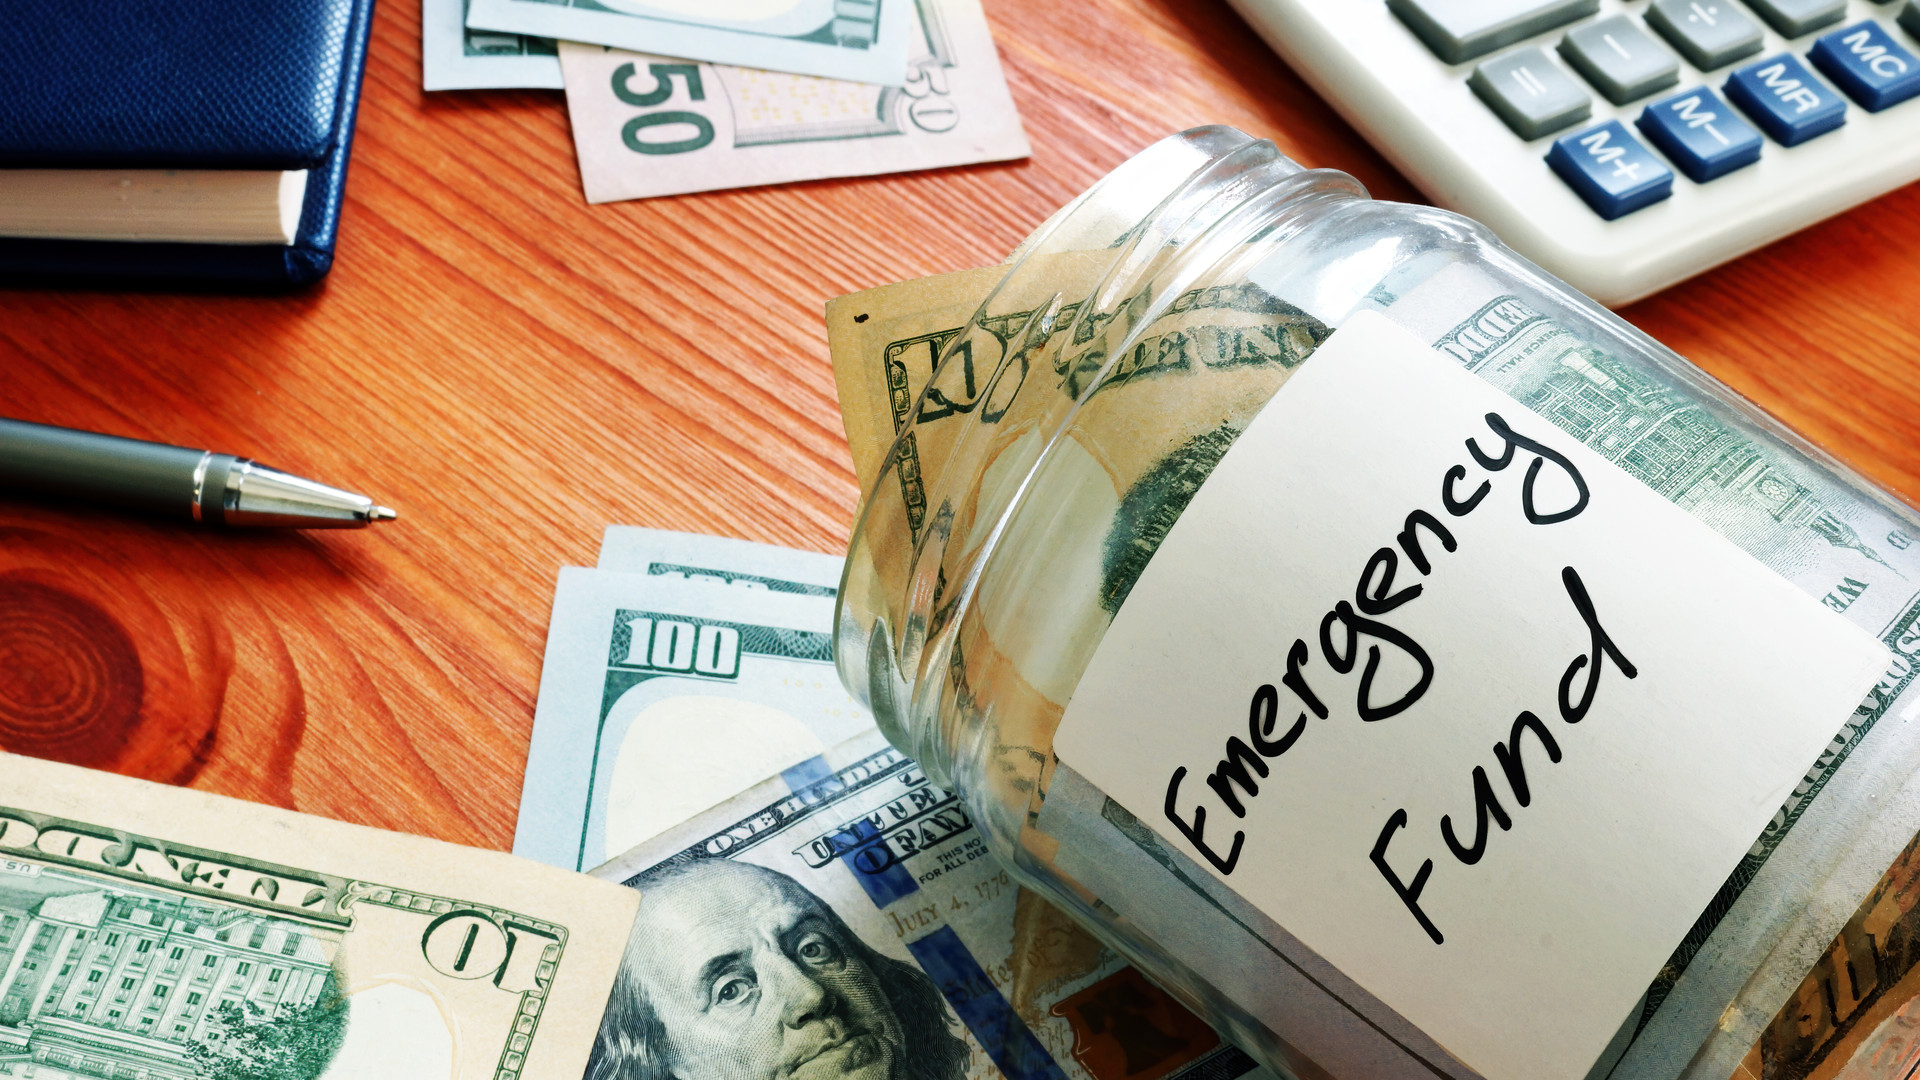 Emergency fund in the glass jar with cash.